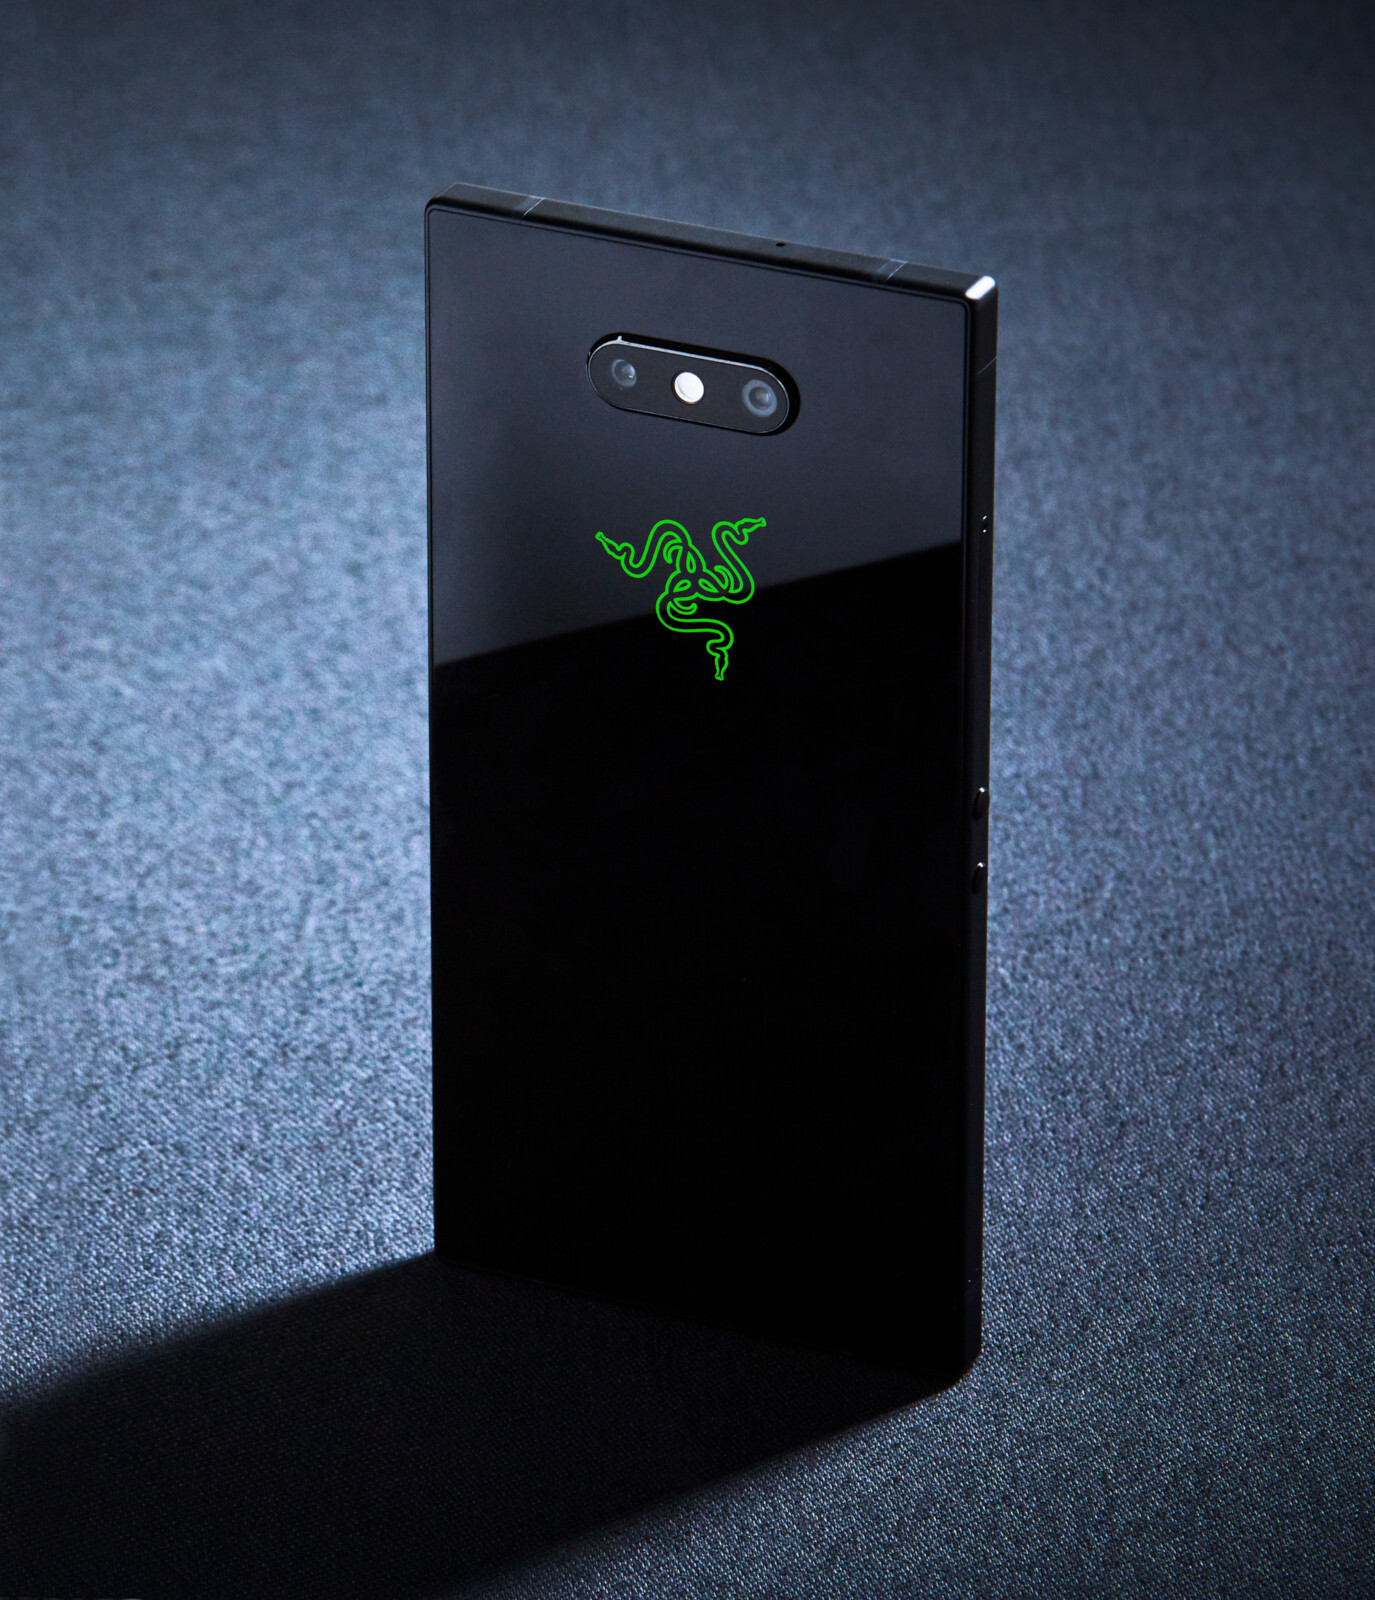 http://i-cdn.phonearena.com//images/articles/333269-image/razer-phone-2-3.jpg